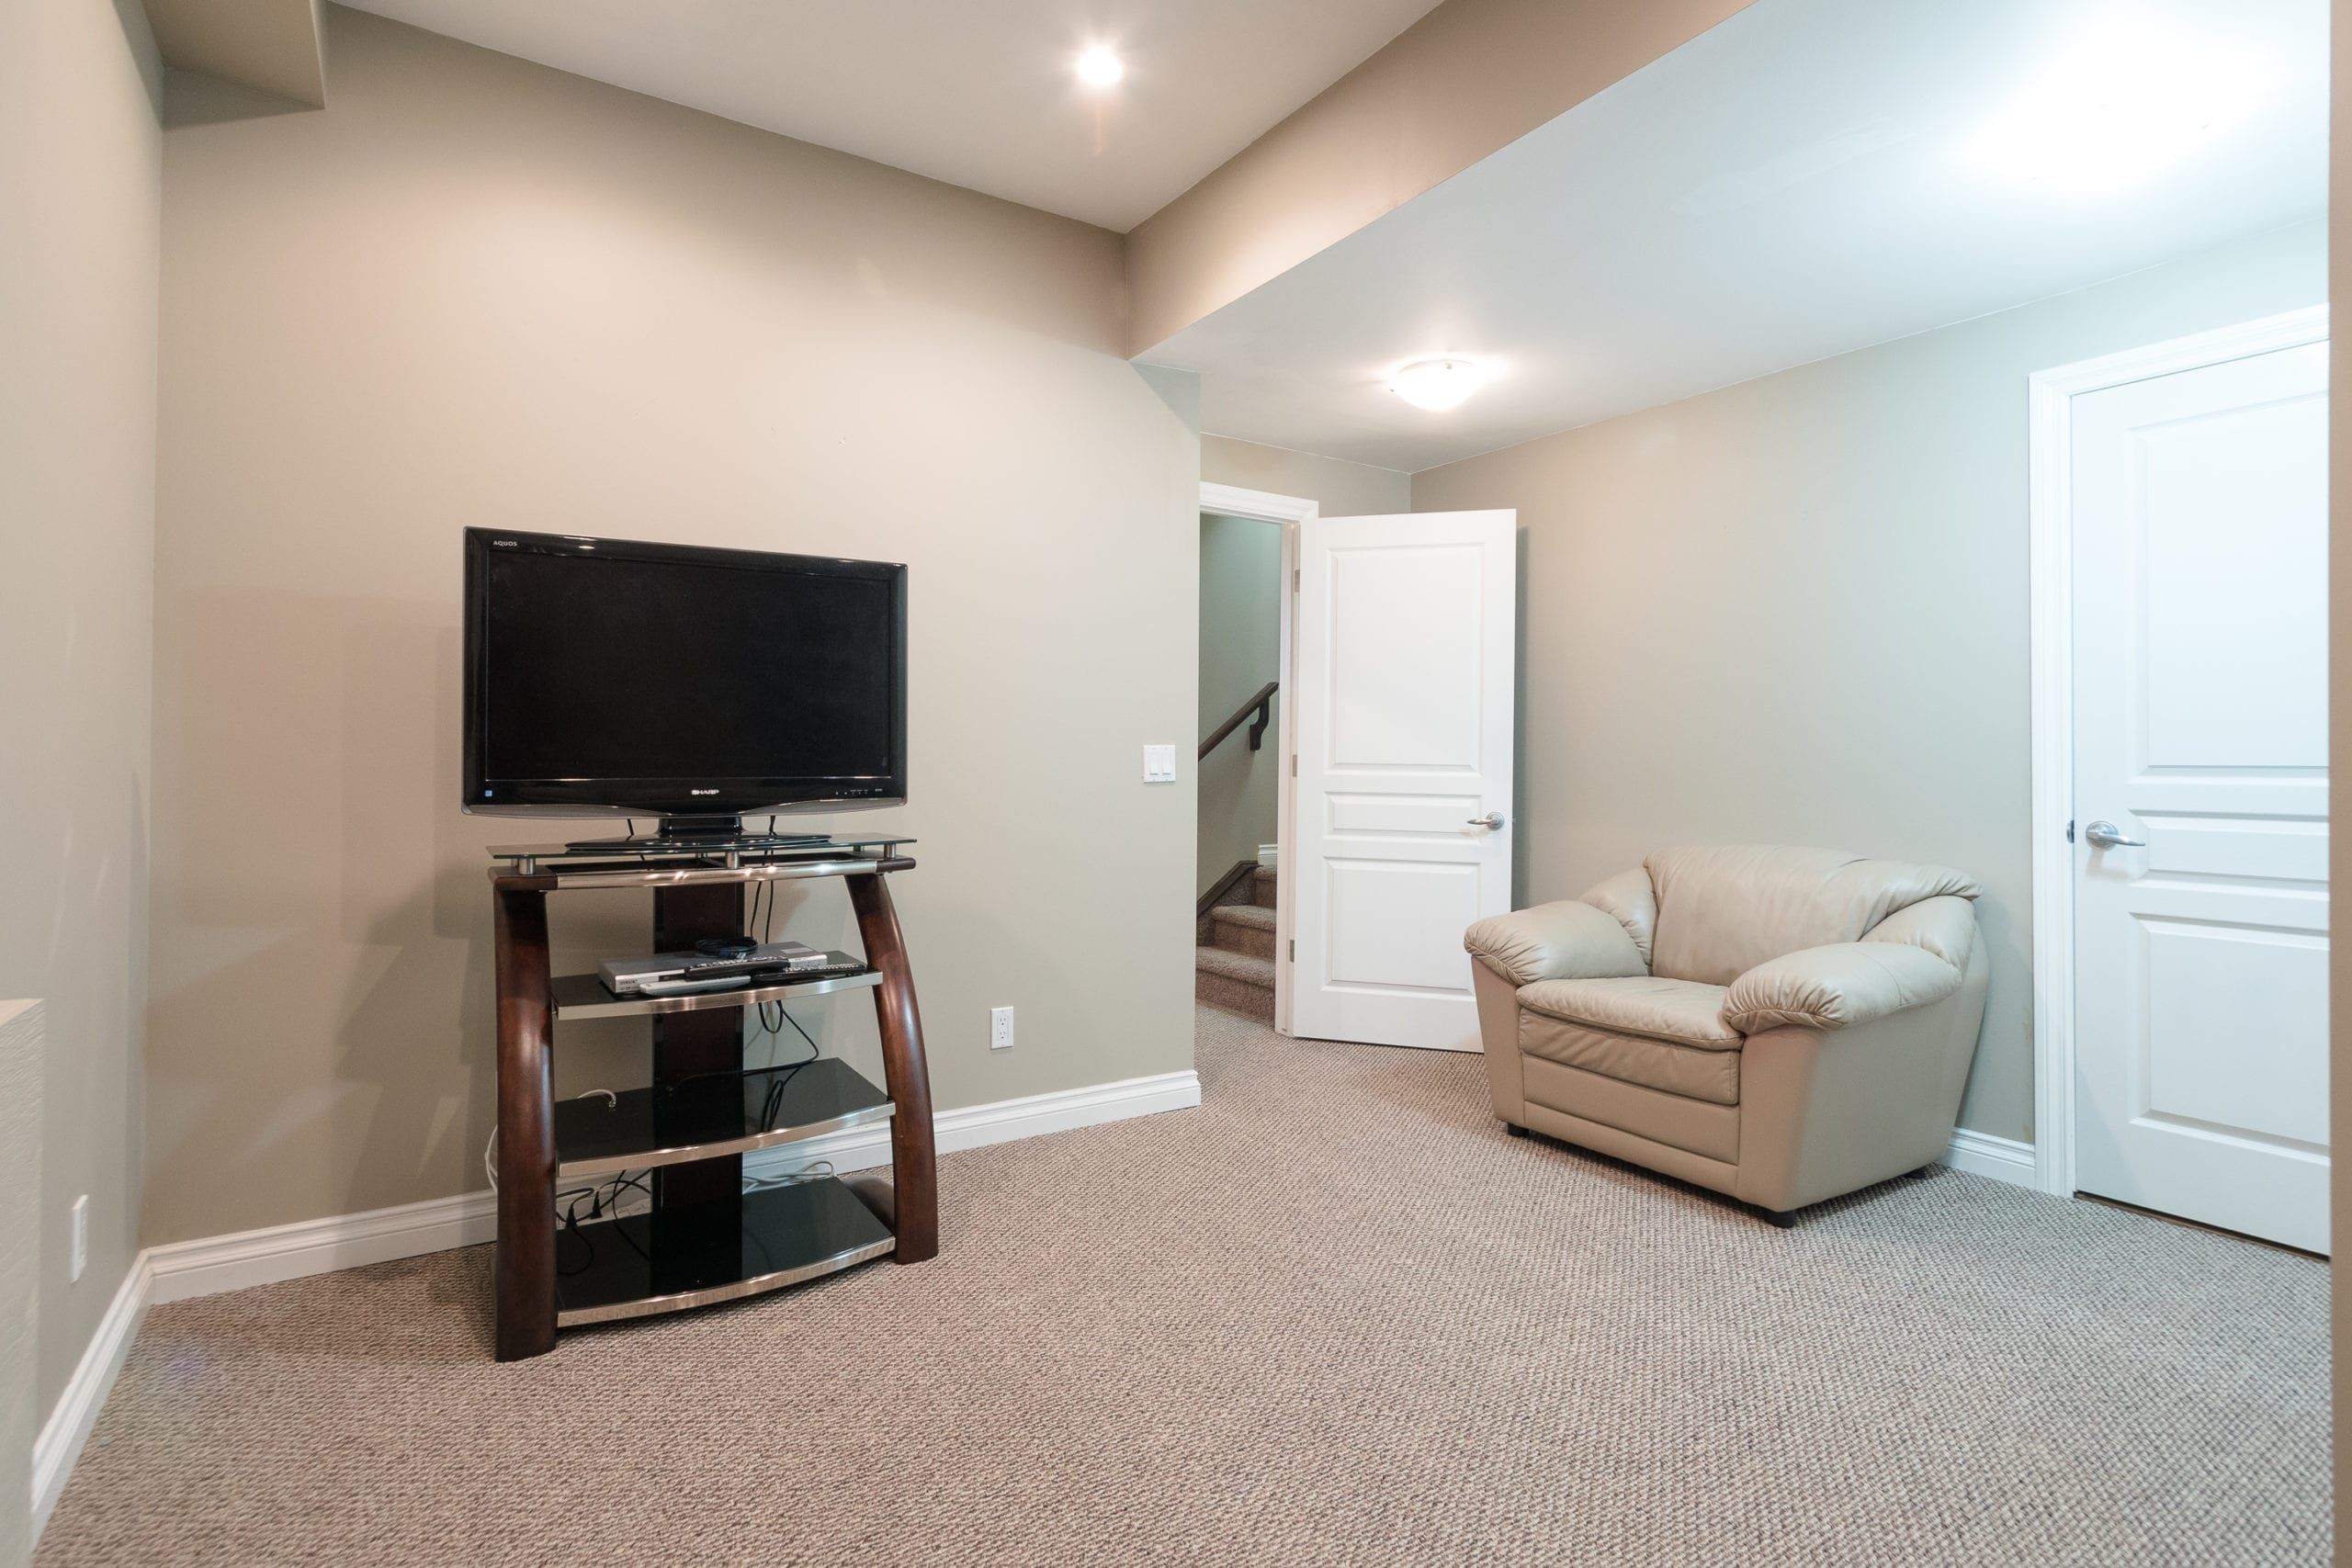 Hello Gorgeous - 61 Sage Meadows Terrace NW, Calgary AB - Tara Molina Real Estate (31 of 41)